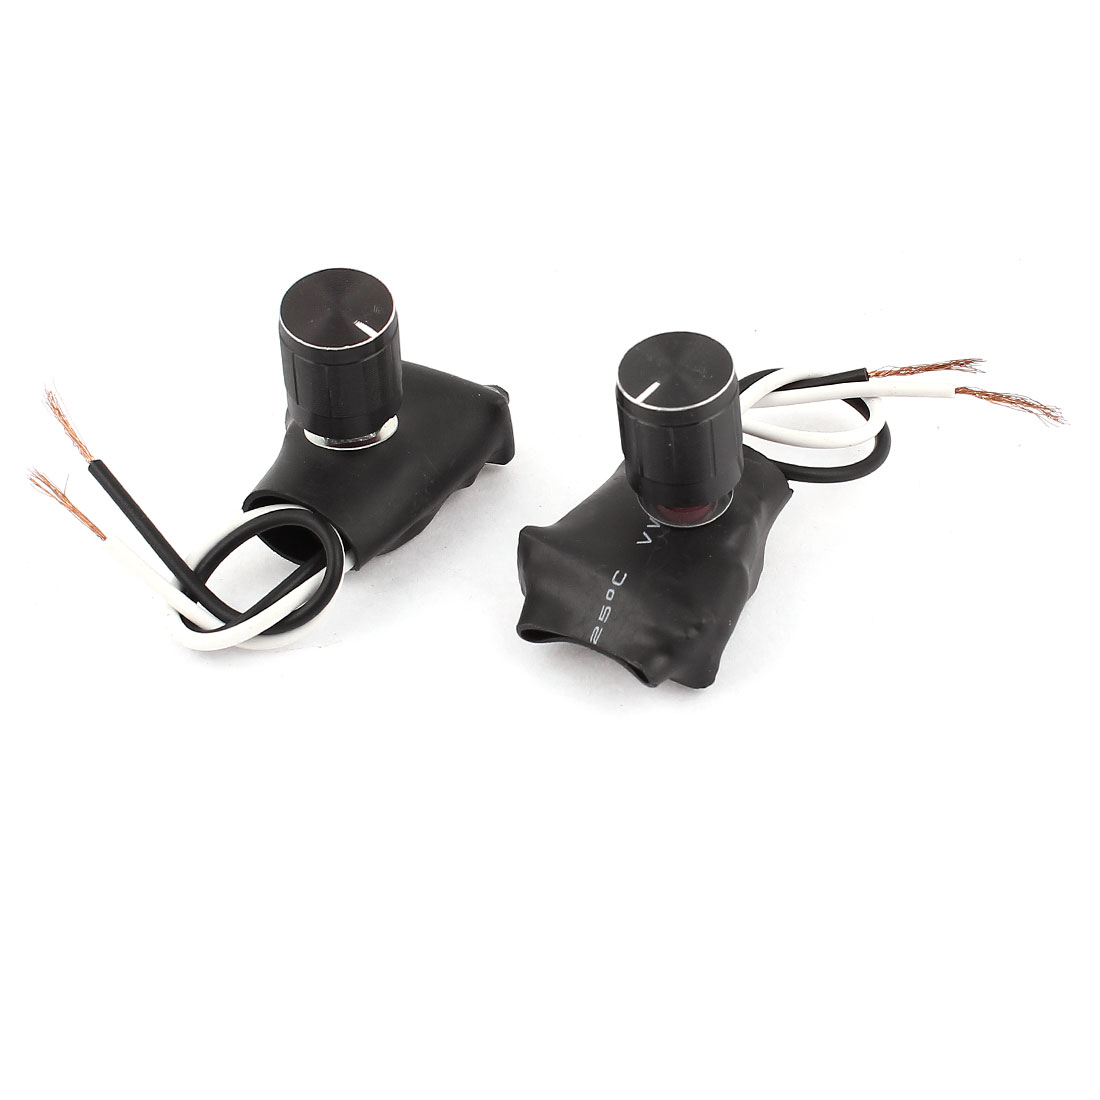 2pcs AC220V 1A Desk Table Lamp Light Bulb Dimmable Dimmer Switch Black